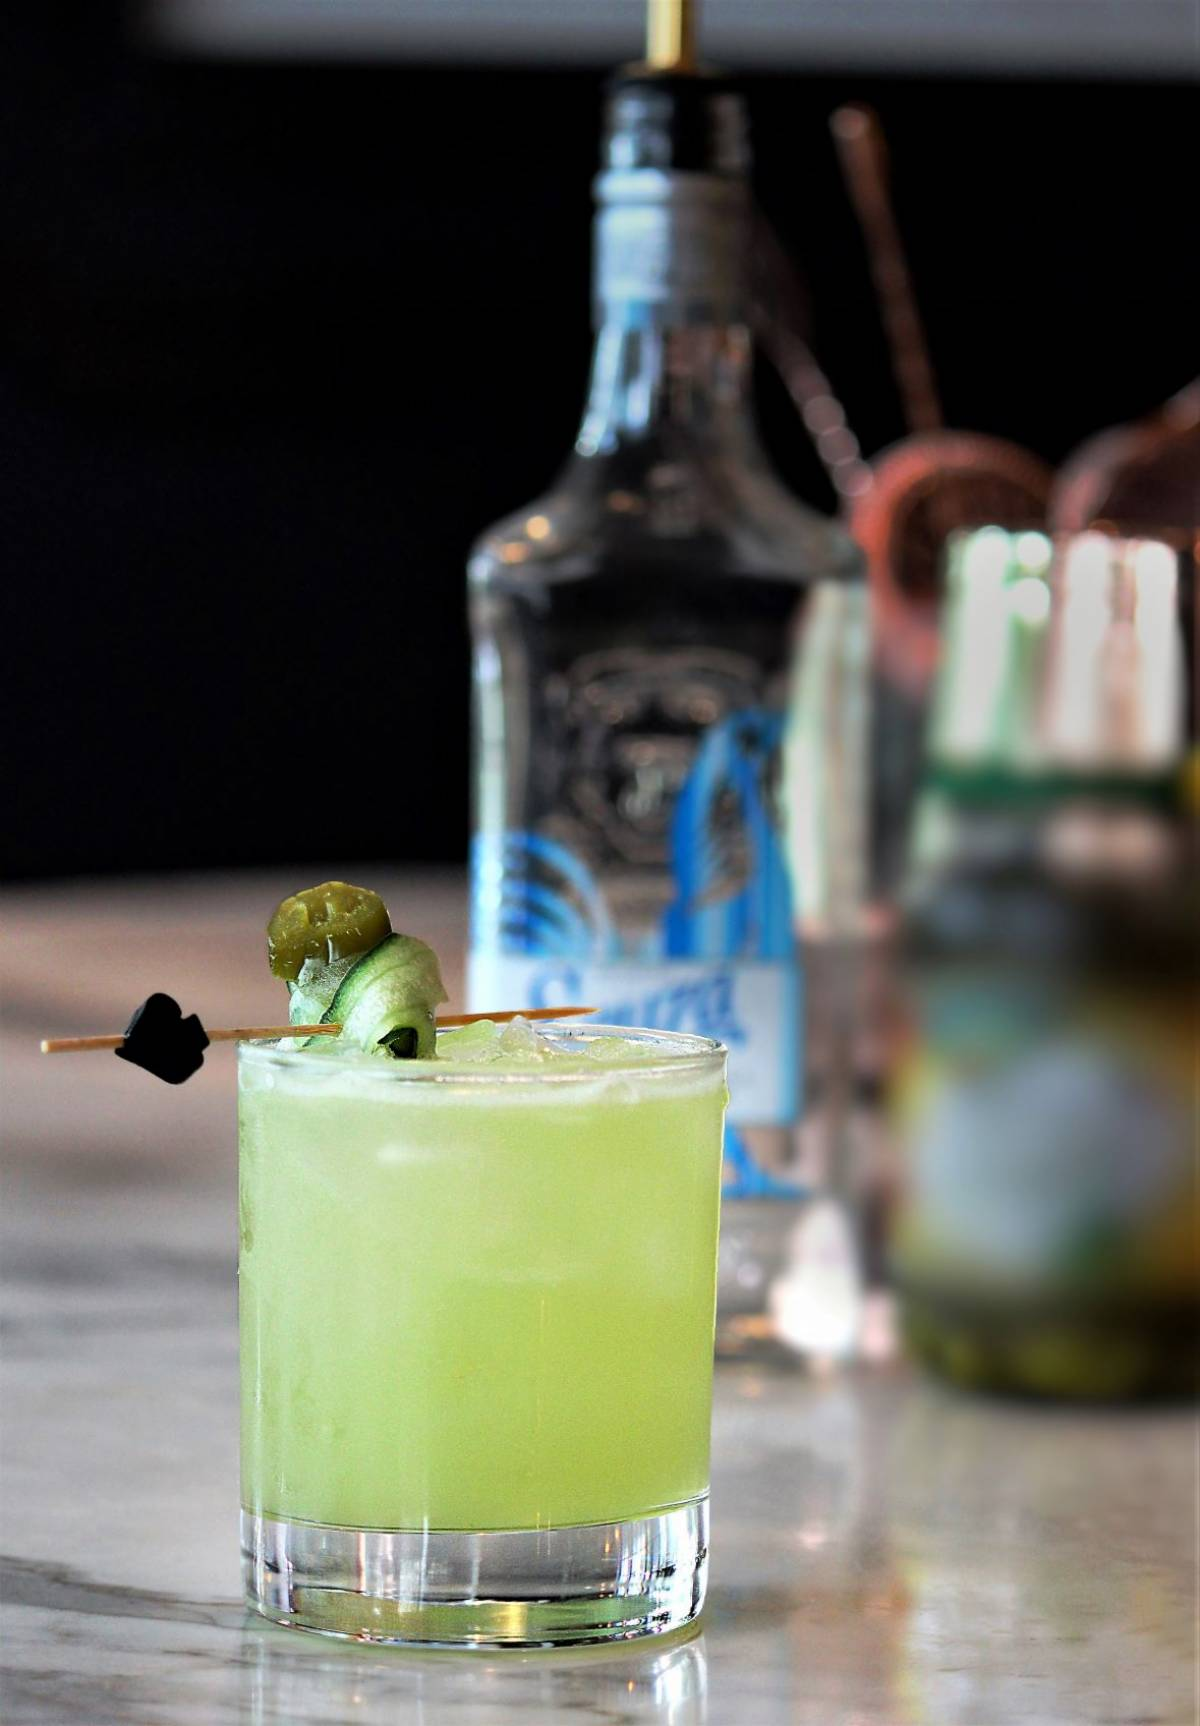 SHAKING THINGS UP WITH NEW COCKTAILS AT GINETT